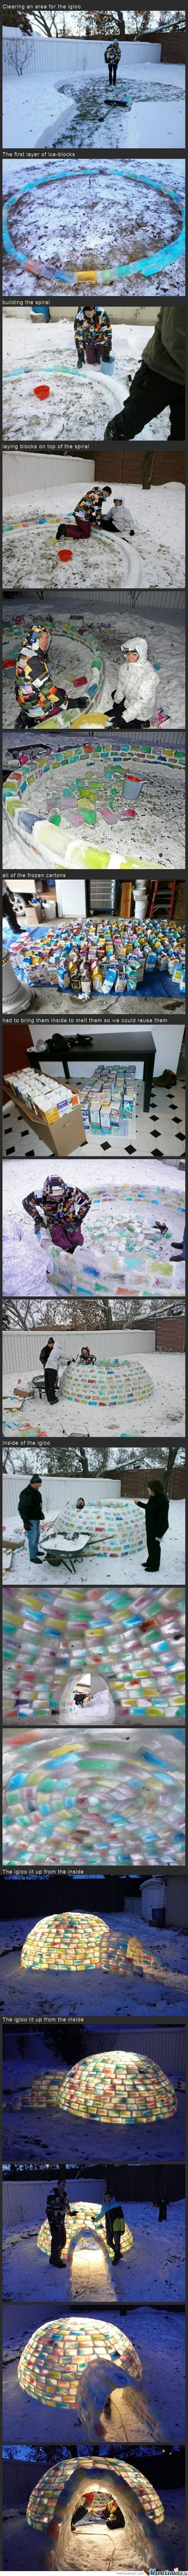 Awesome Igloo!